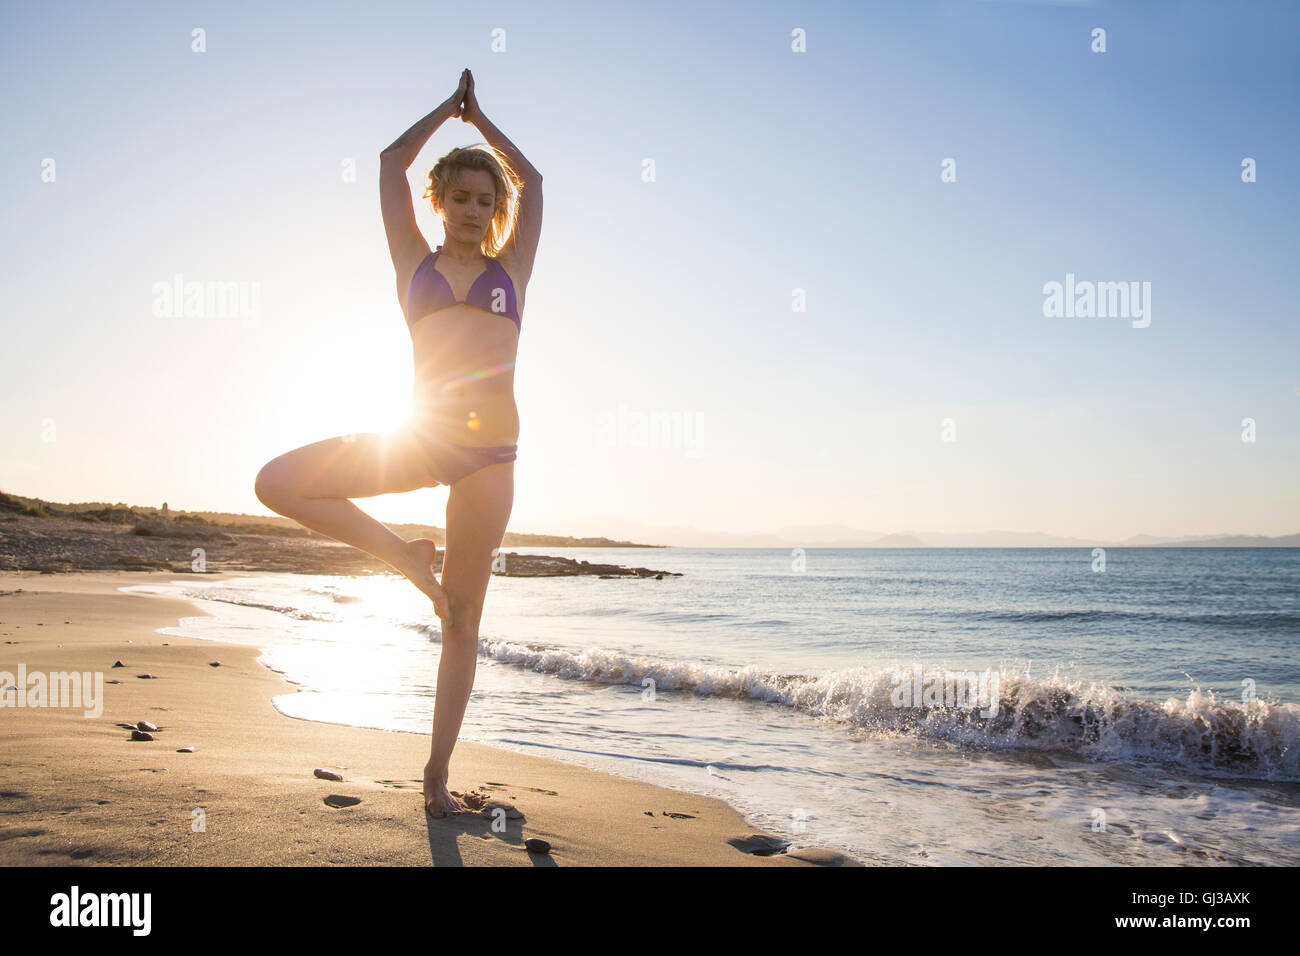 Young woman on beach, standing on one leg, in yoga position - Stock Image